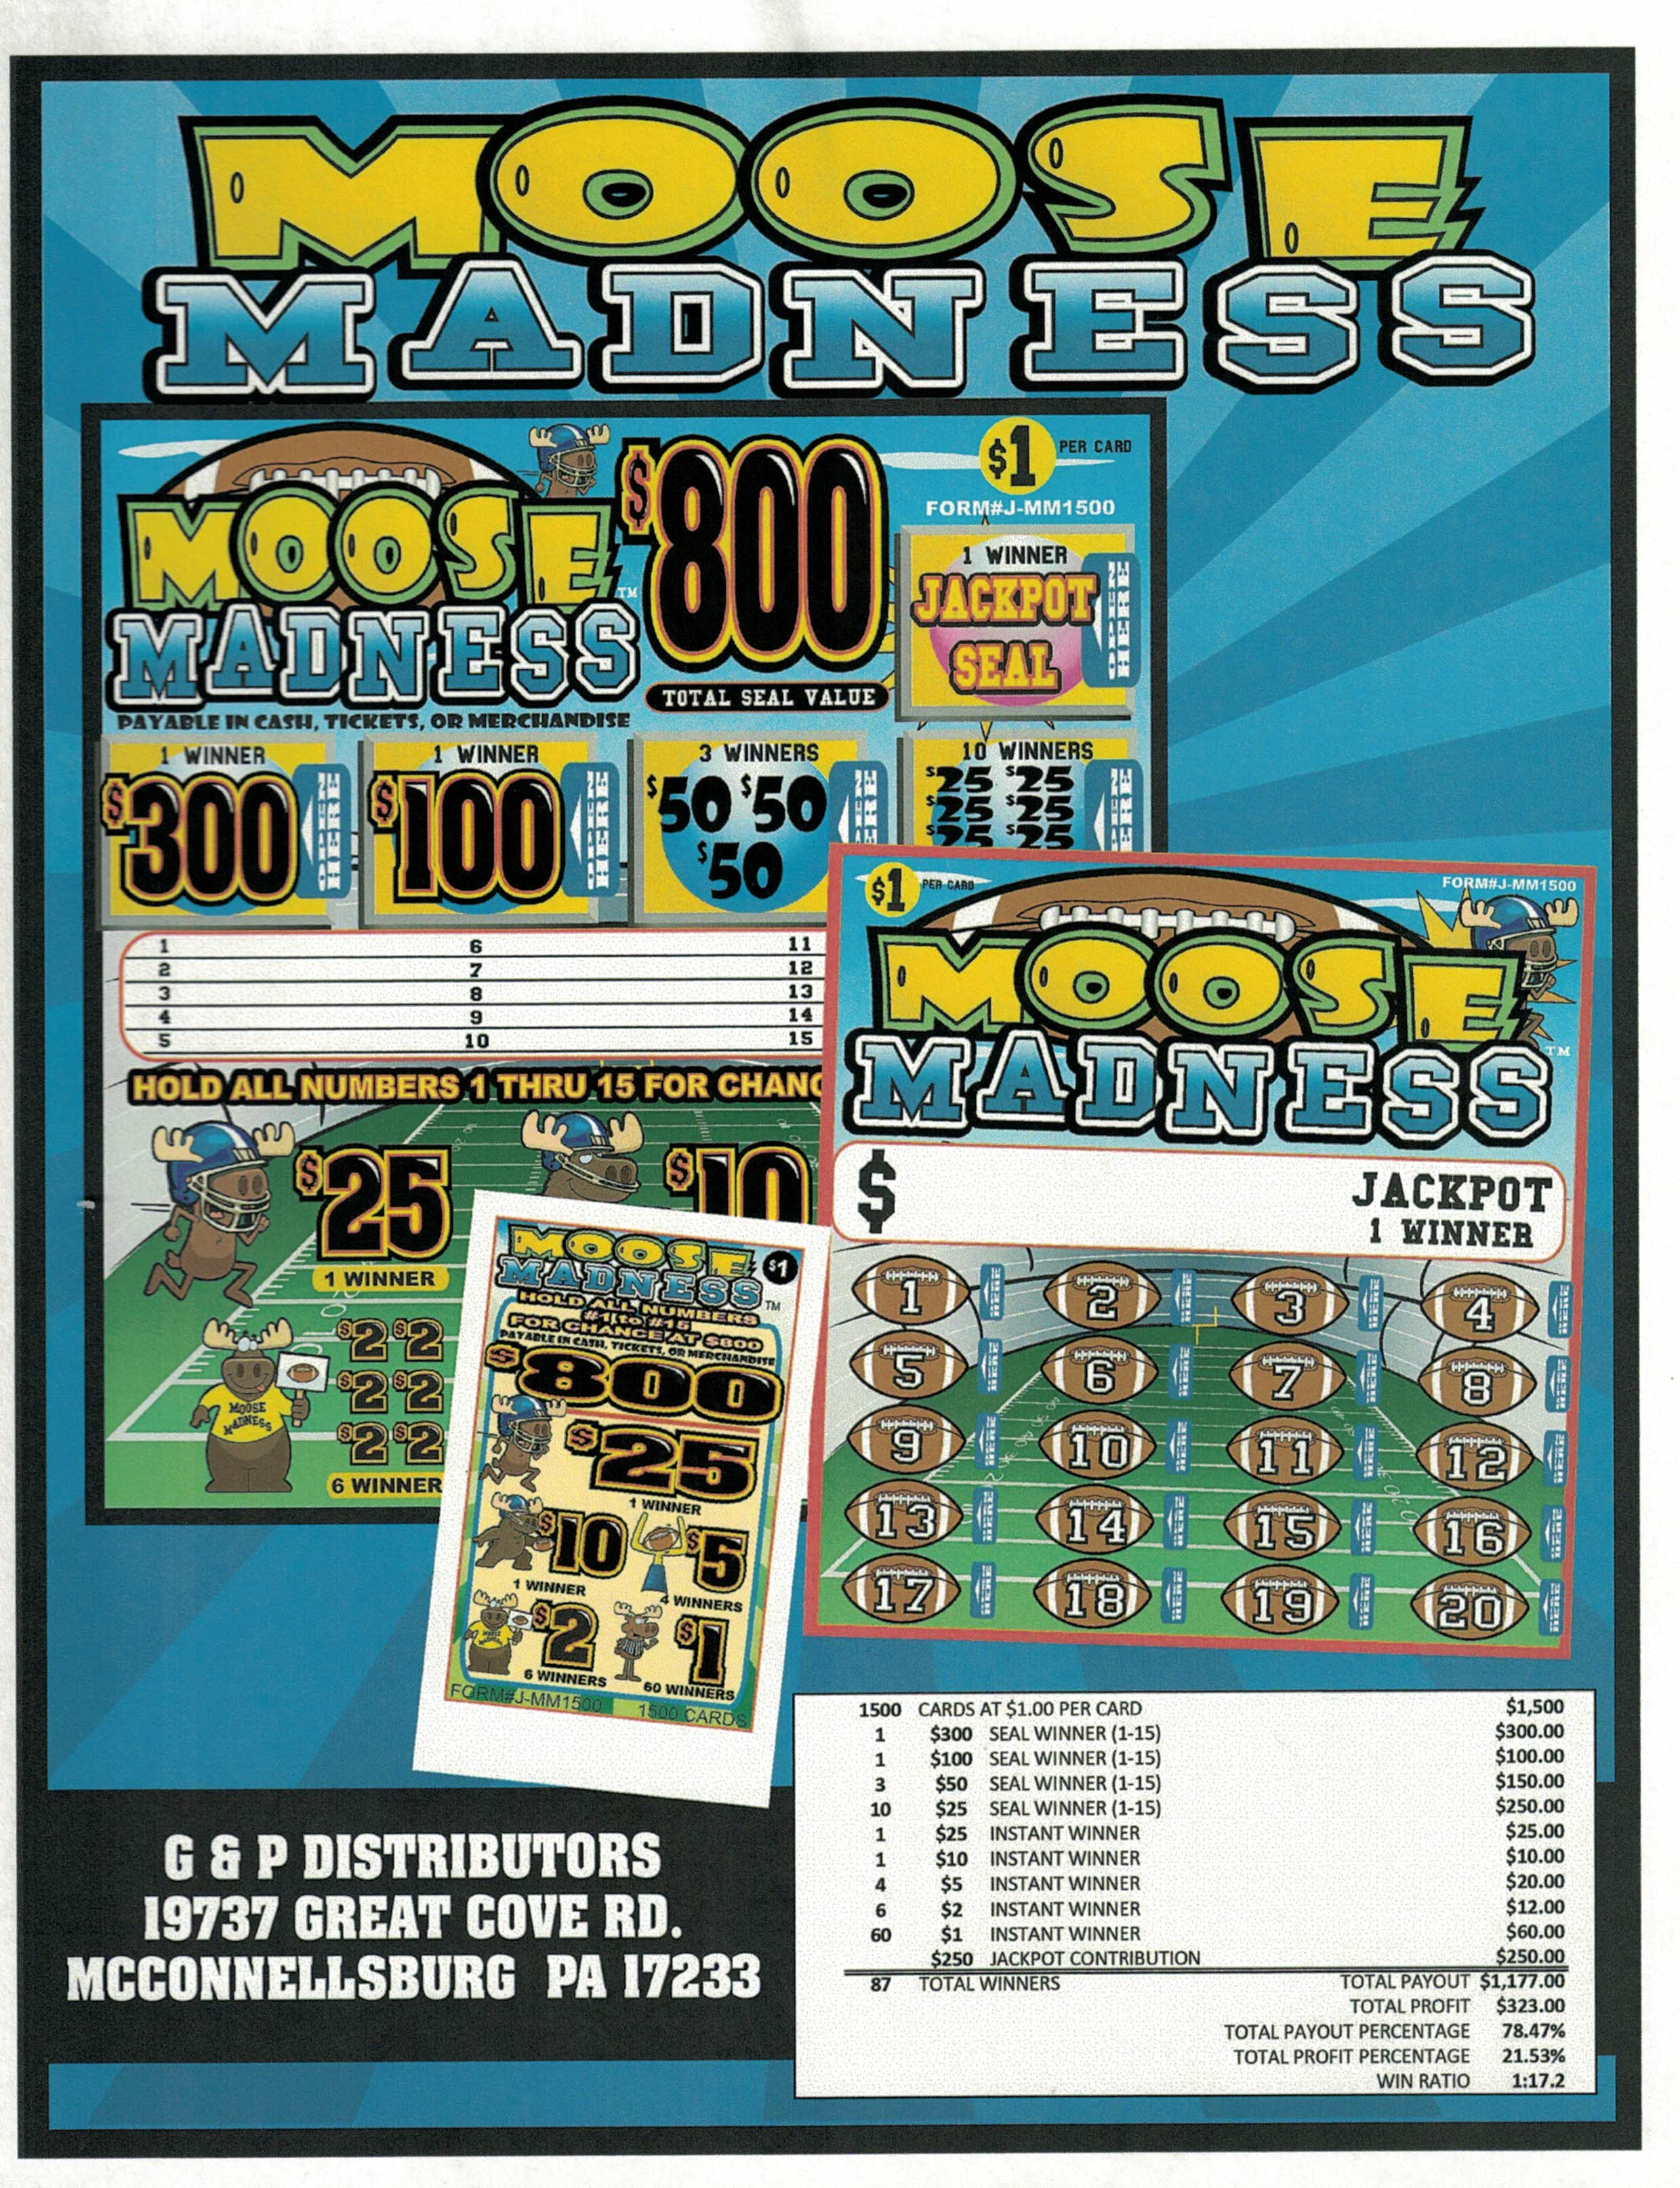 MOOSE MADNESS Image